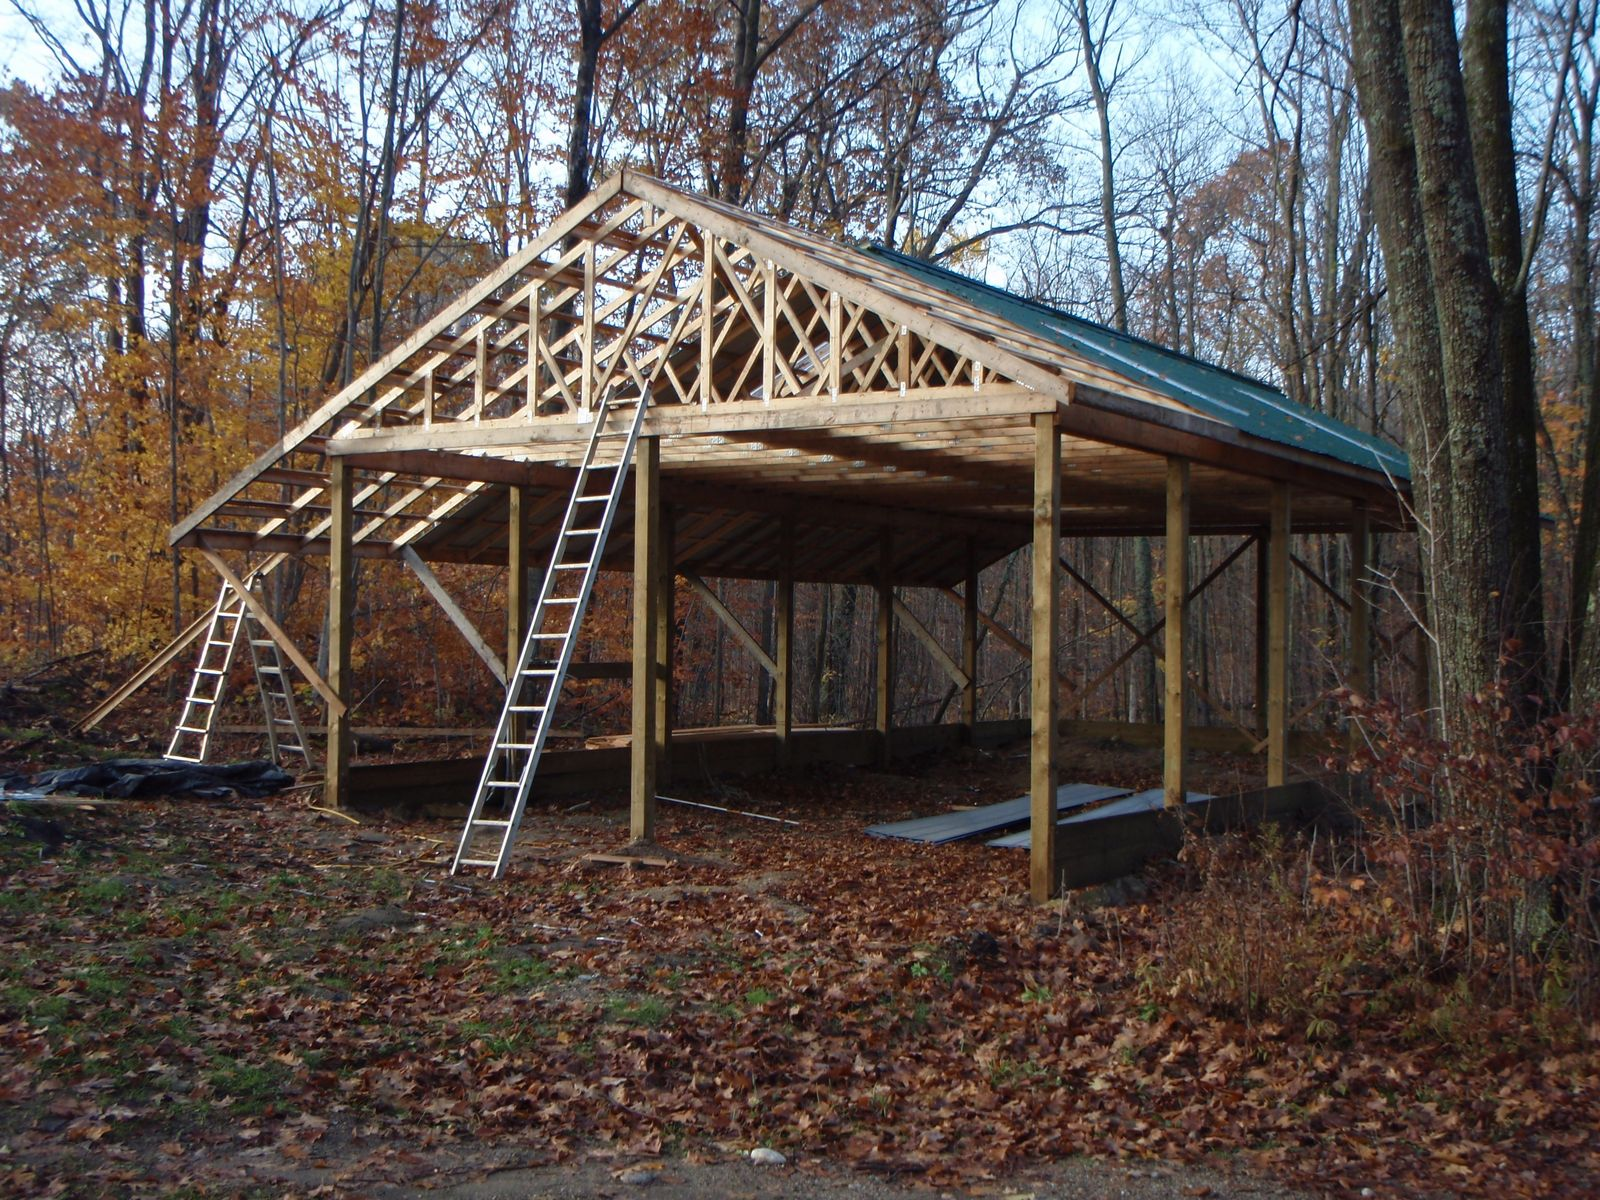 How to build a pole barn garage step by step joy studio for Build your own pole barn